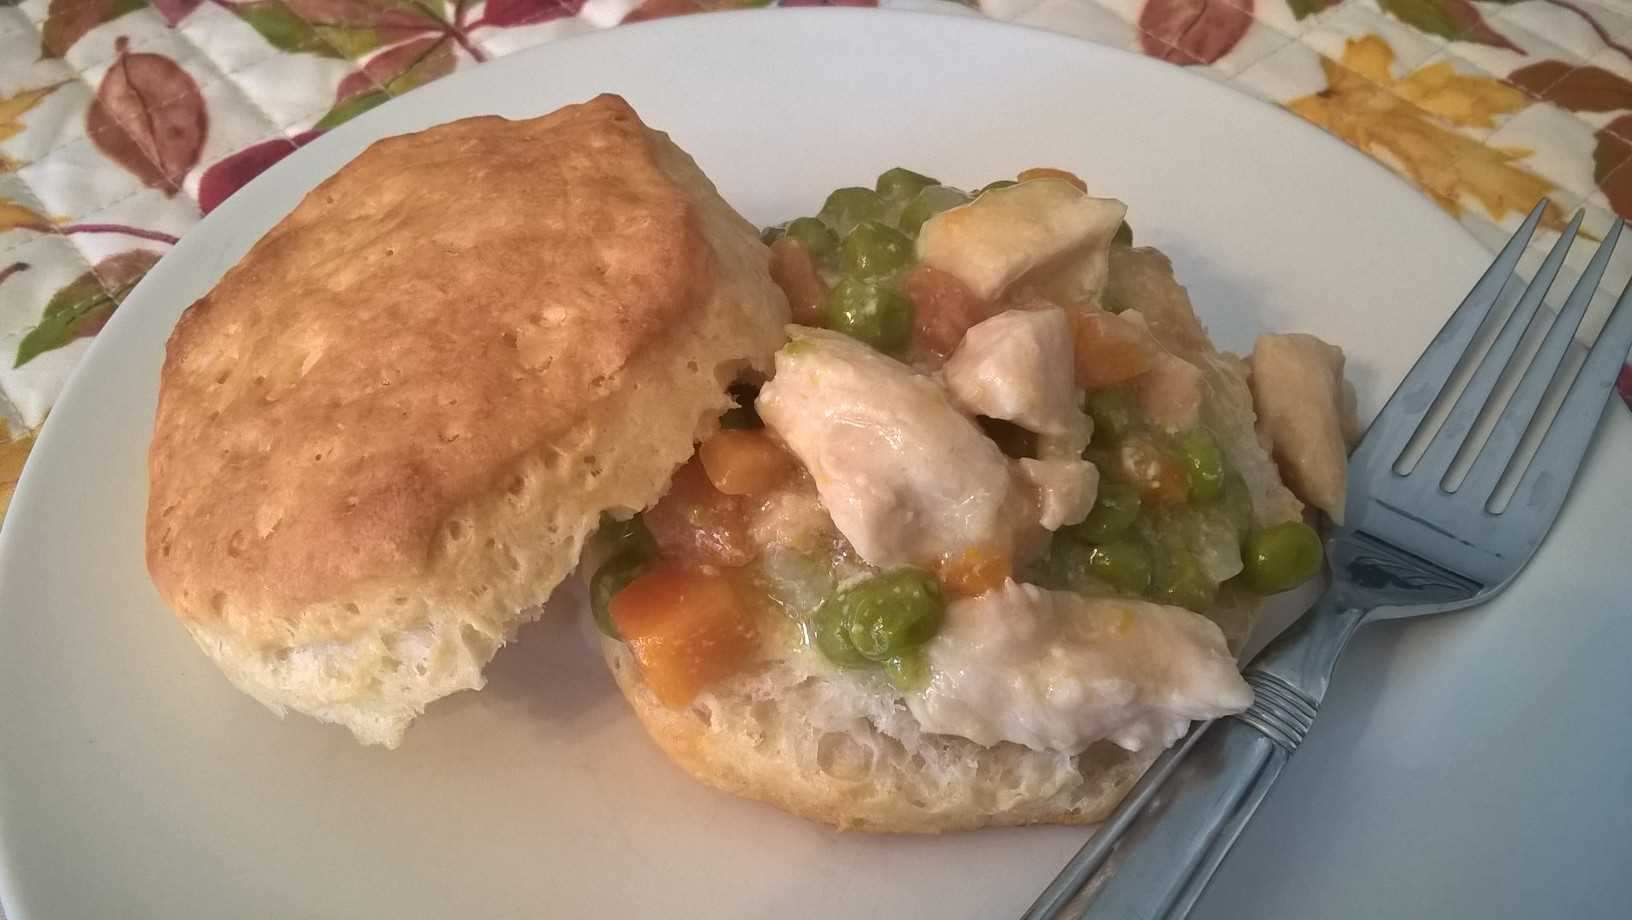 Chicken and Biscuits